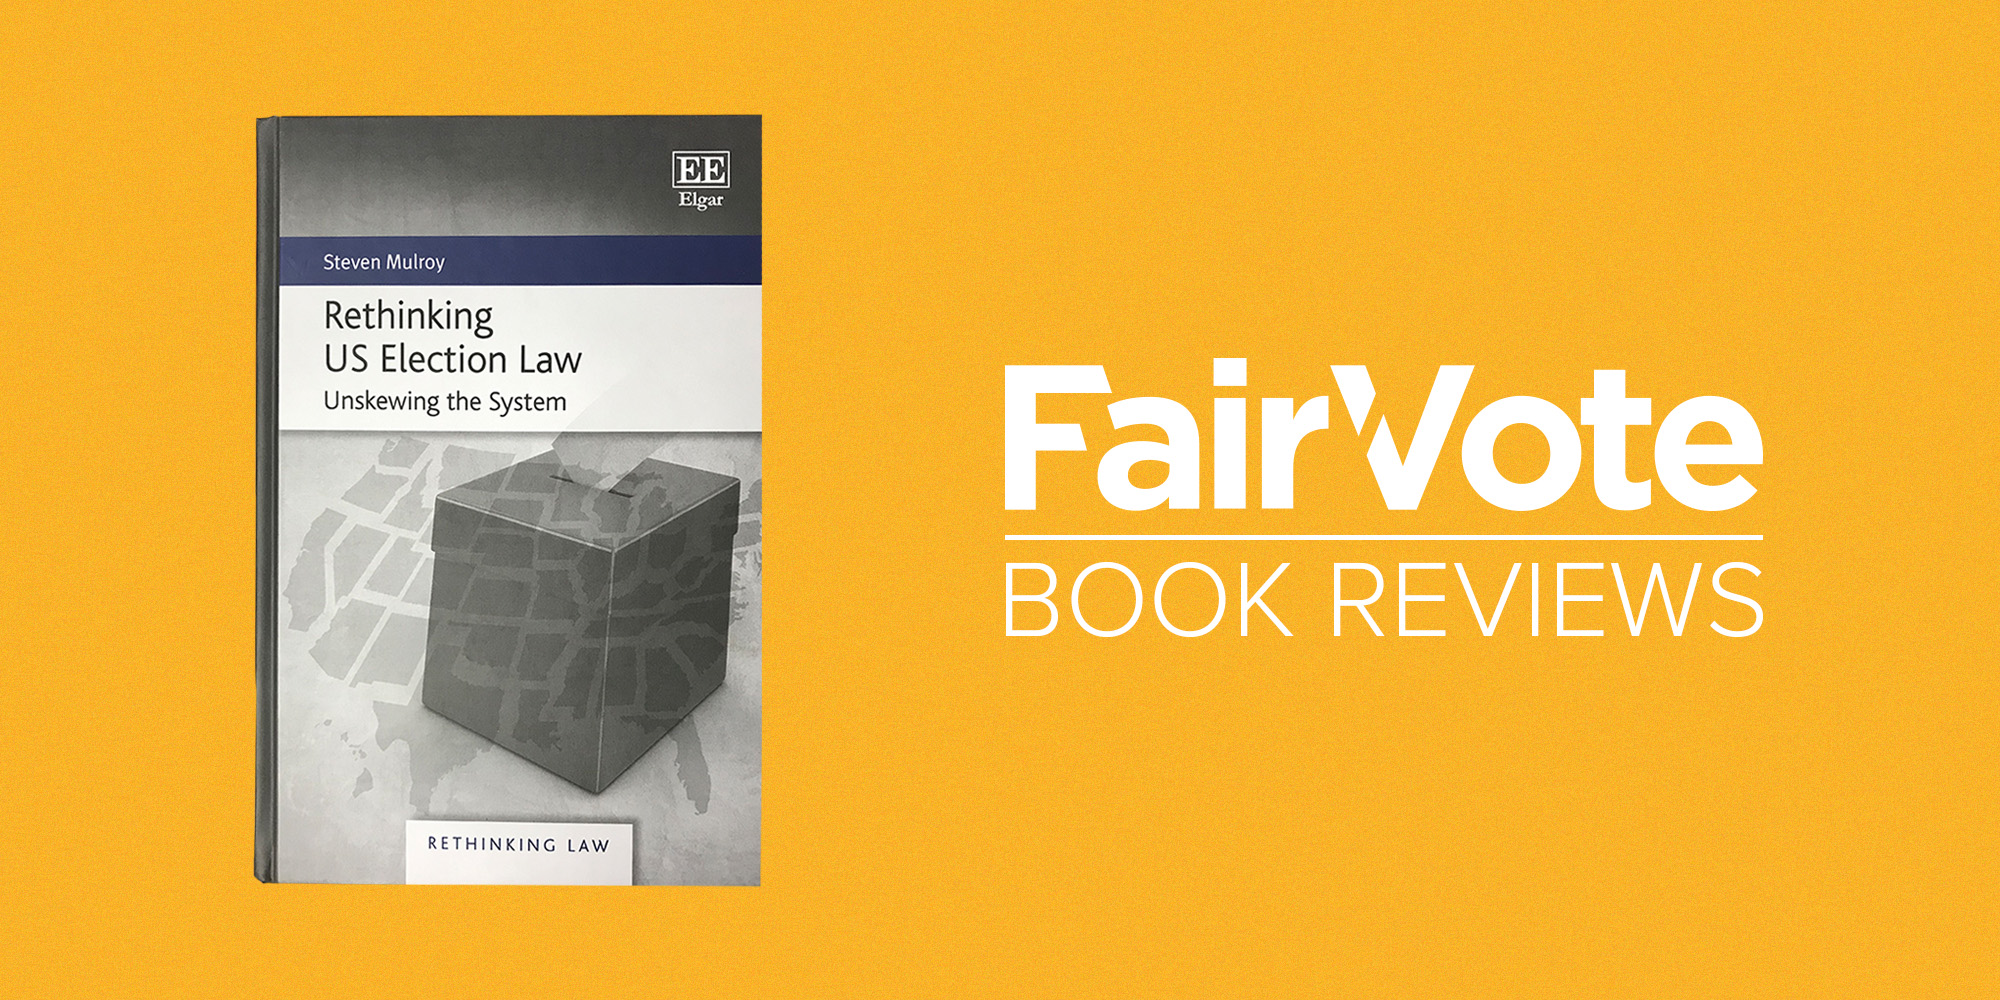 Book Review: 'Rethinking U.S. Election Law' by Steve Mulroy